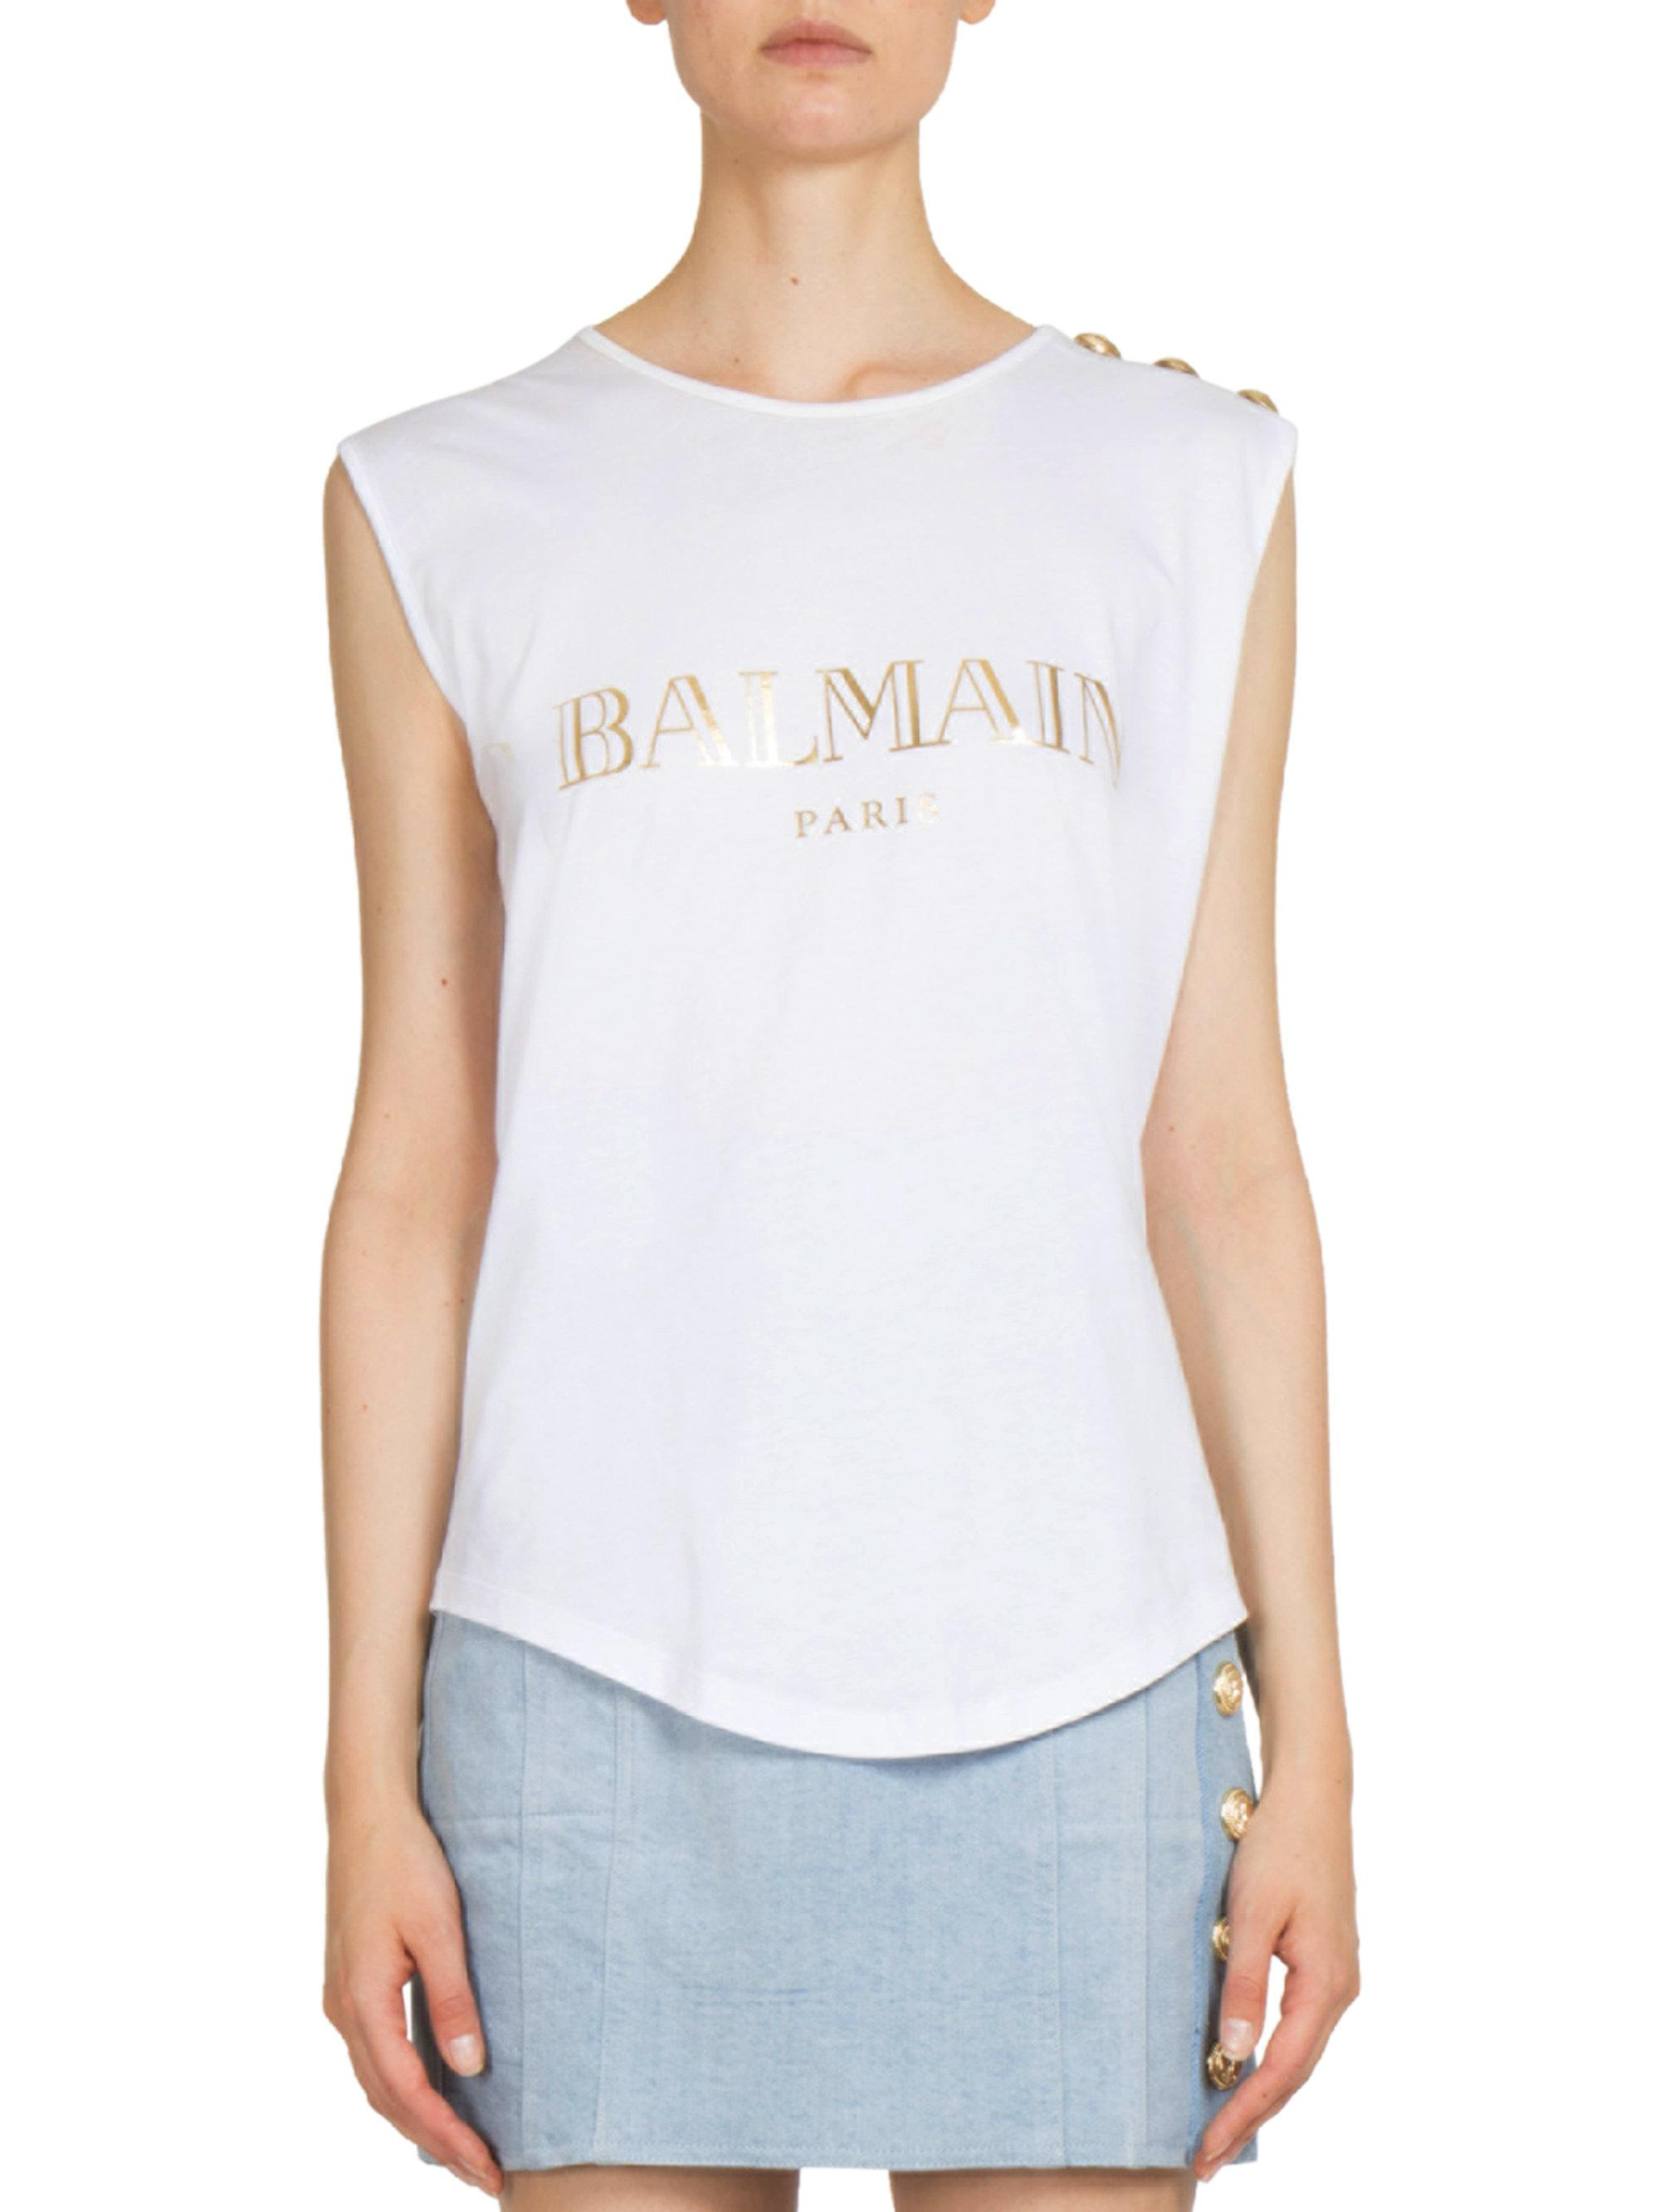 6be9c699 Balmain Cotton Logo Muscle Tee in White - Lyst